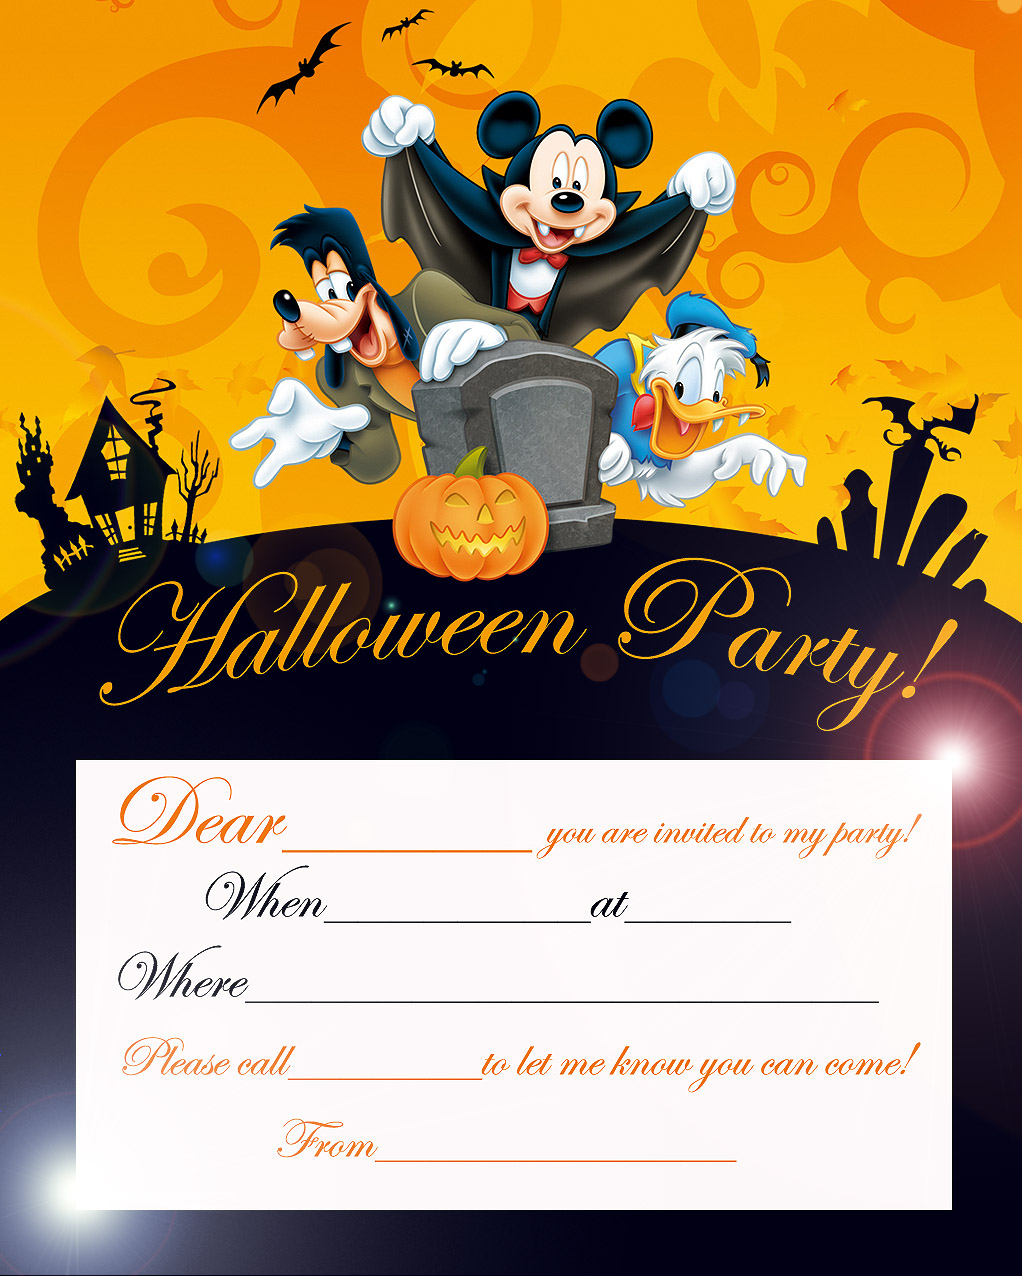 Halloween party invitations mickey mouse donald duck and for Where to have a halloween party